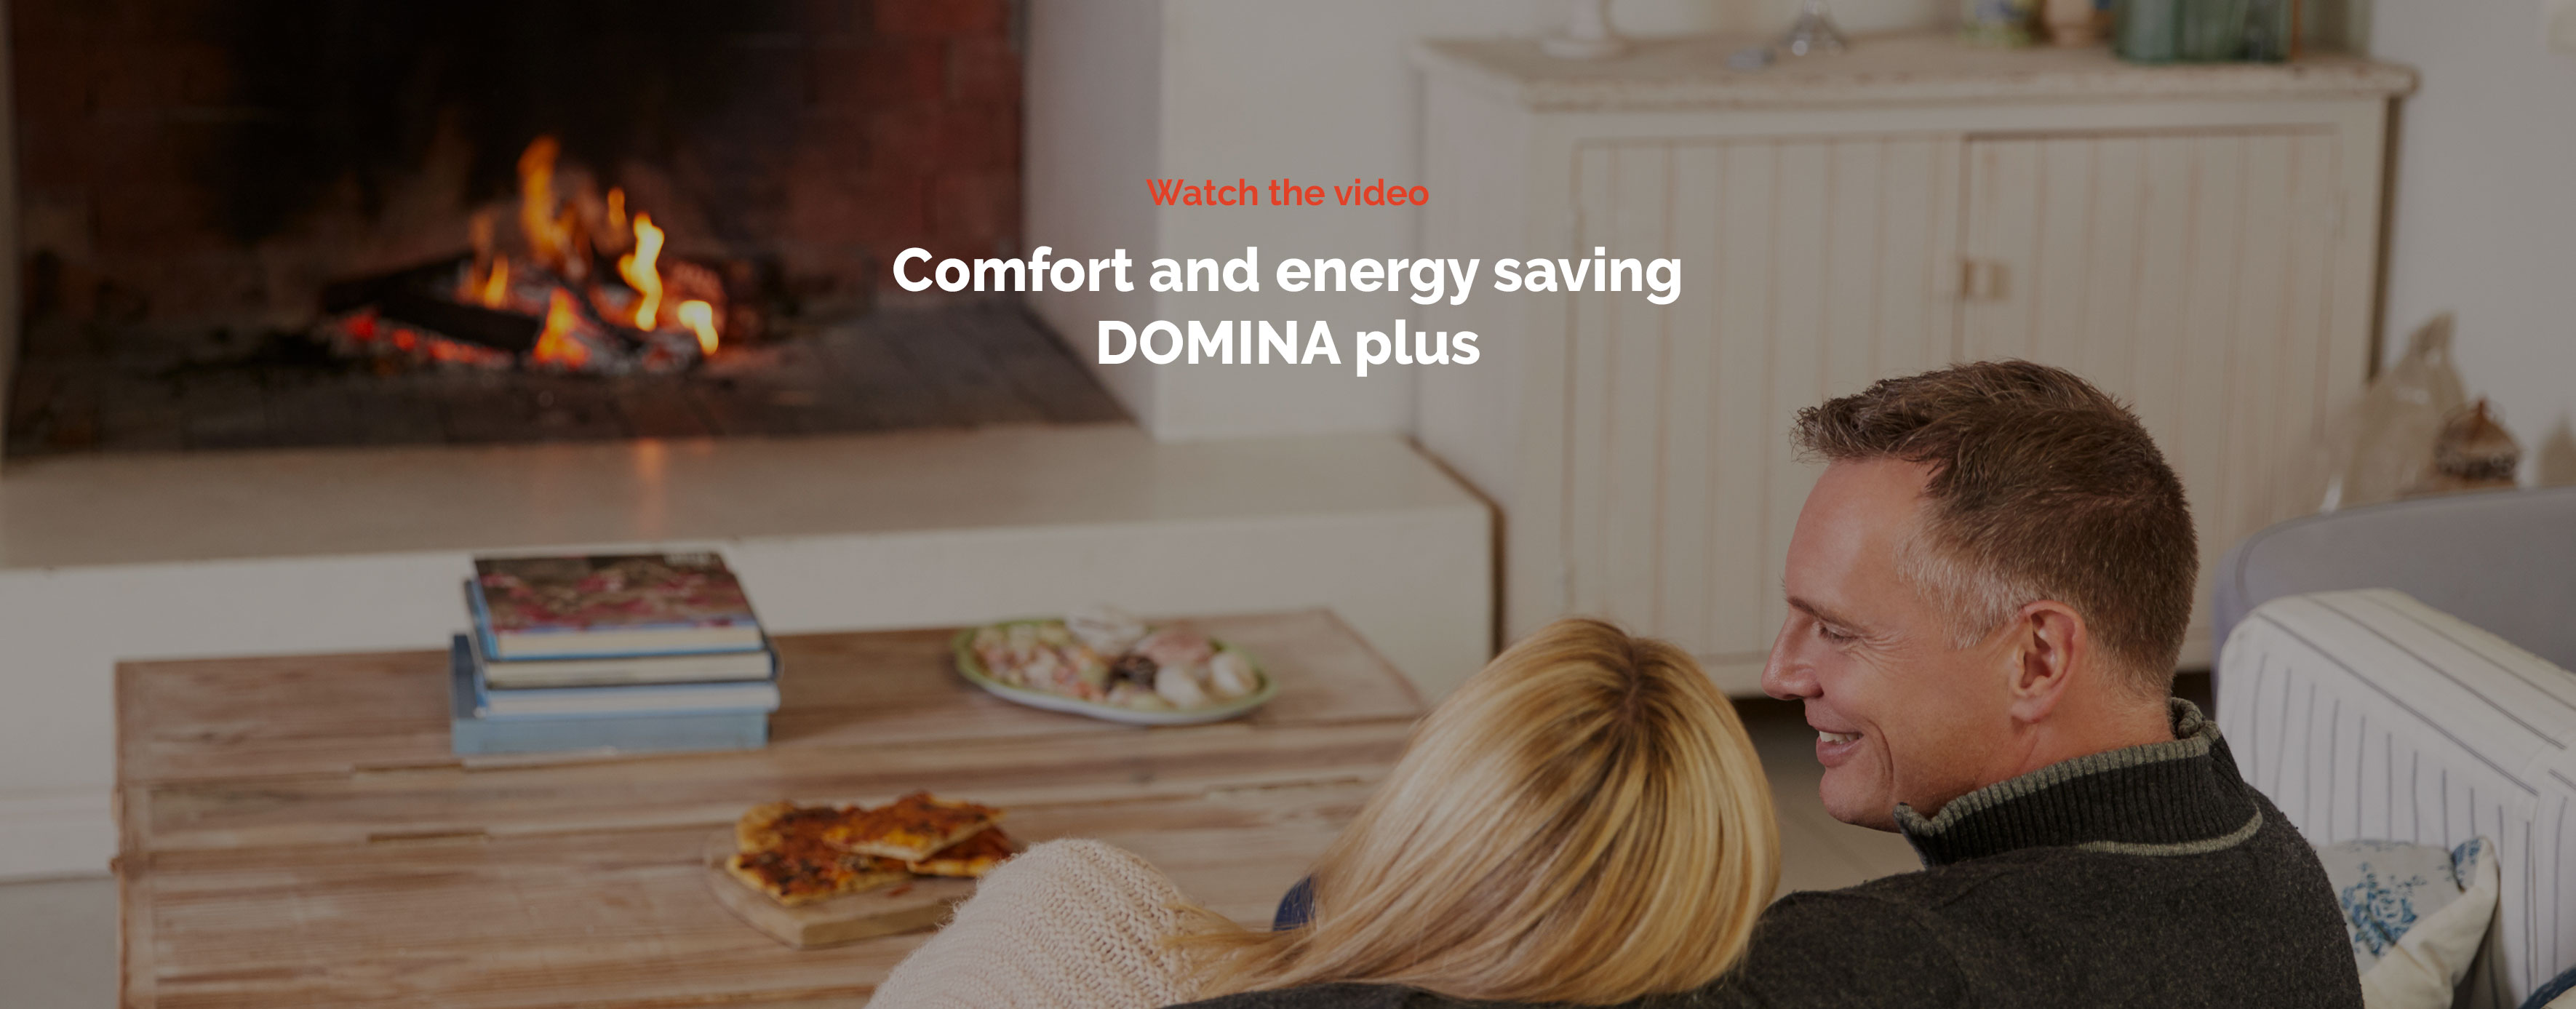 Home automation AVE DOMINA plus – Comfort and energy savings video